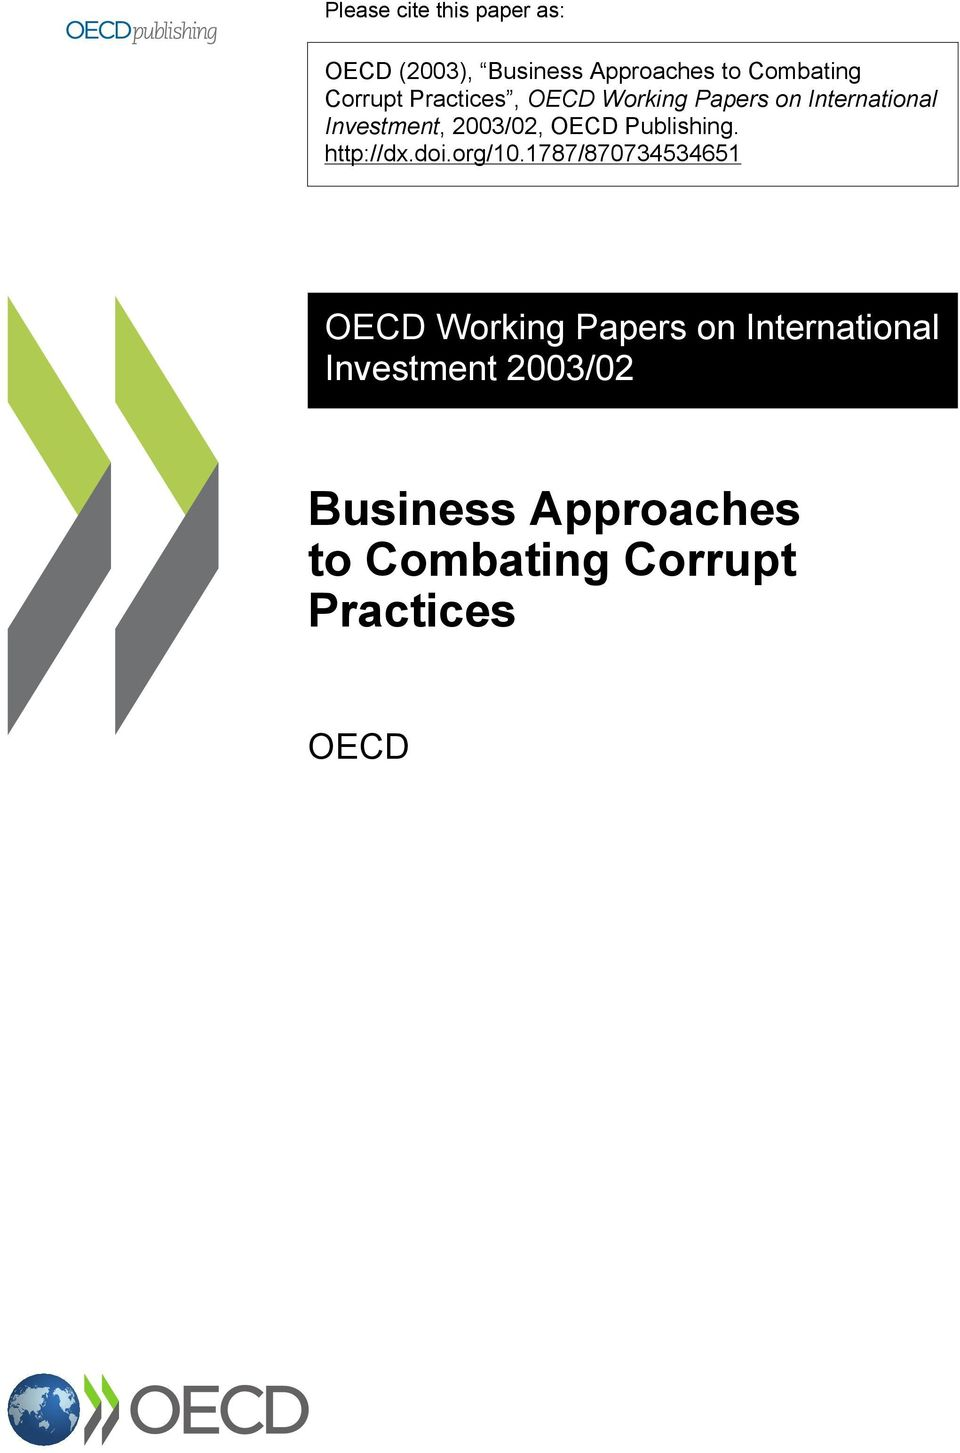 OECD Publishing. http://dx.doi.org/10.